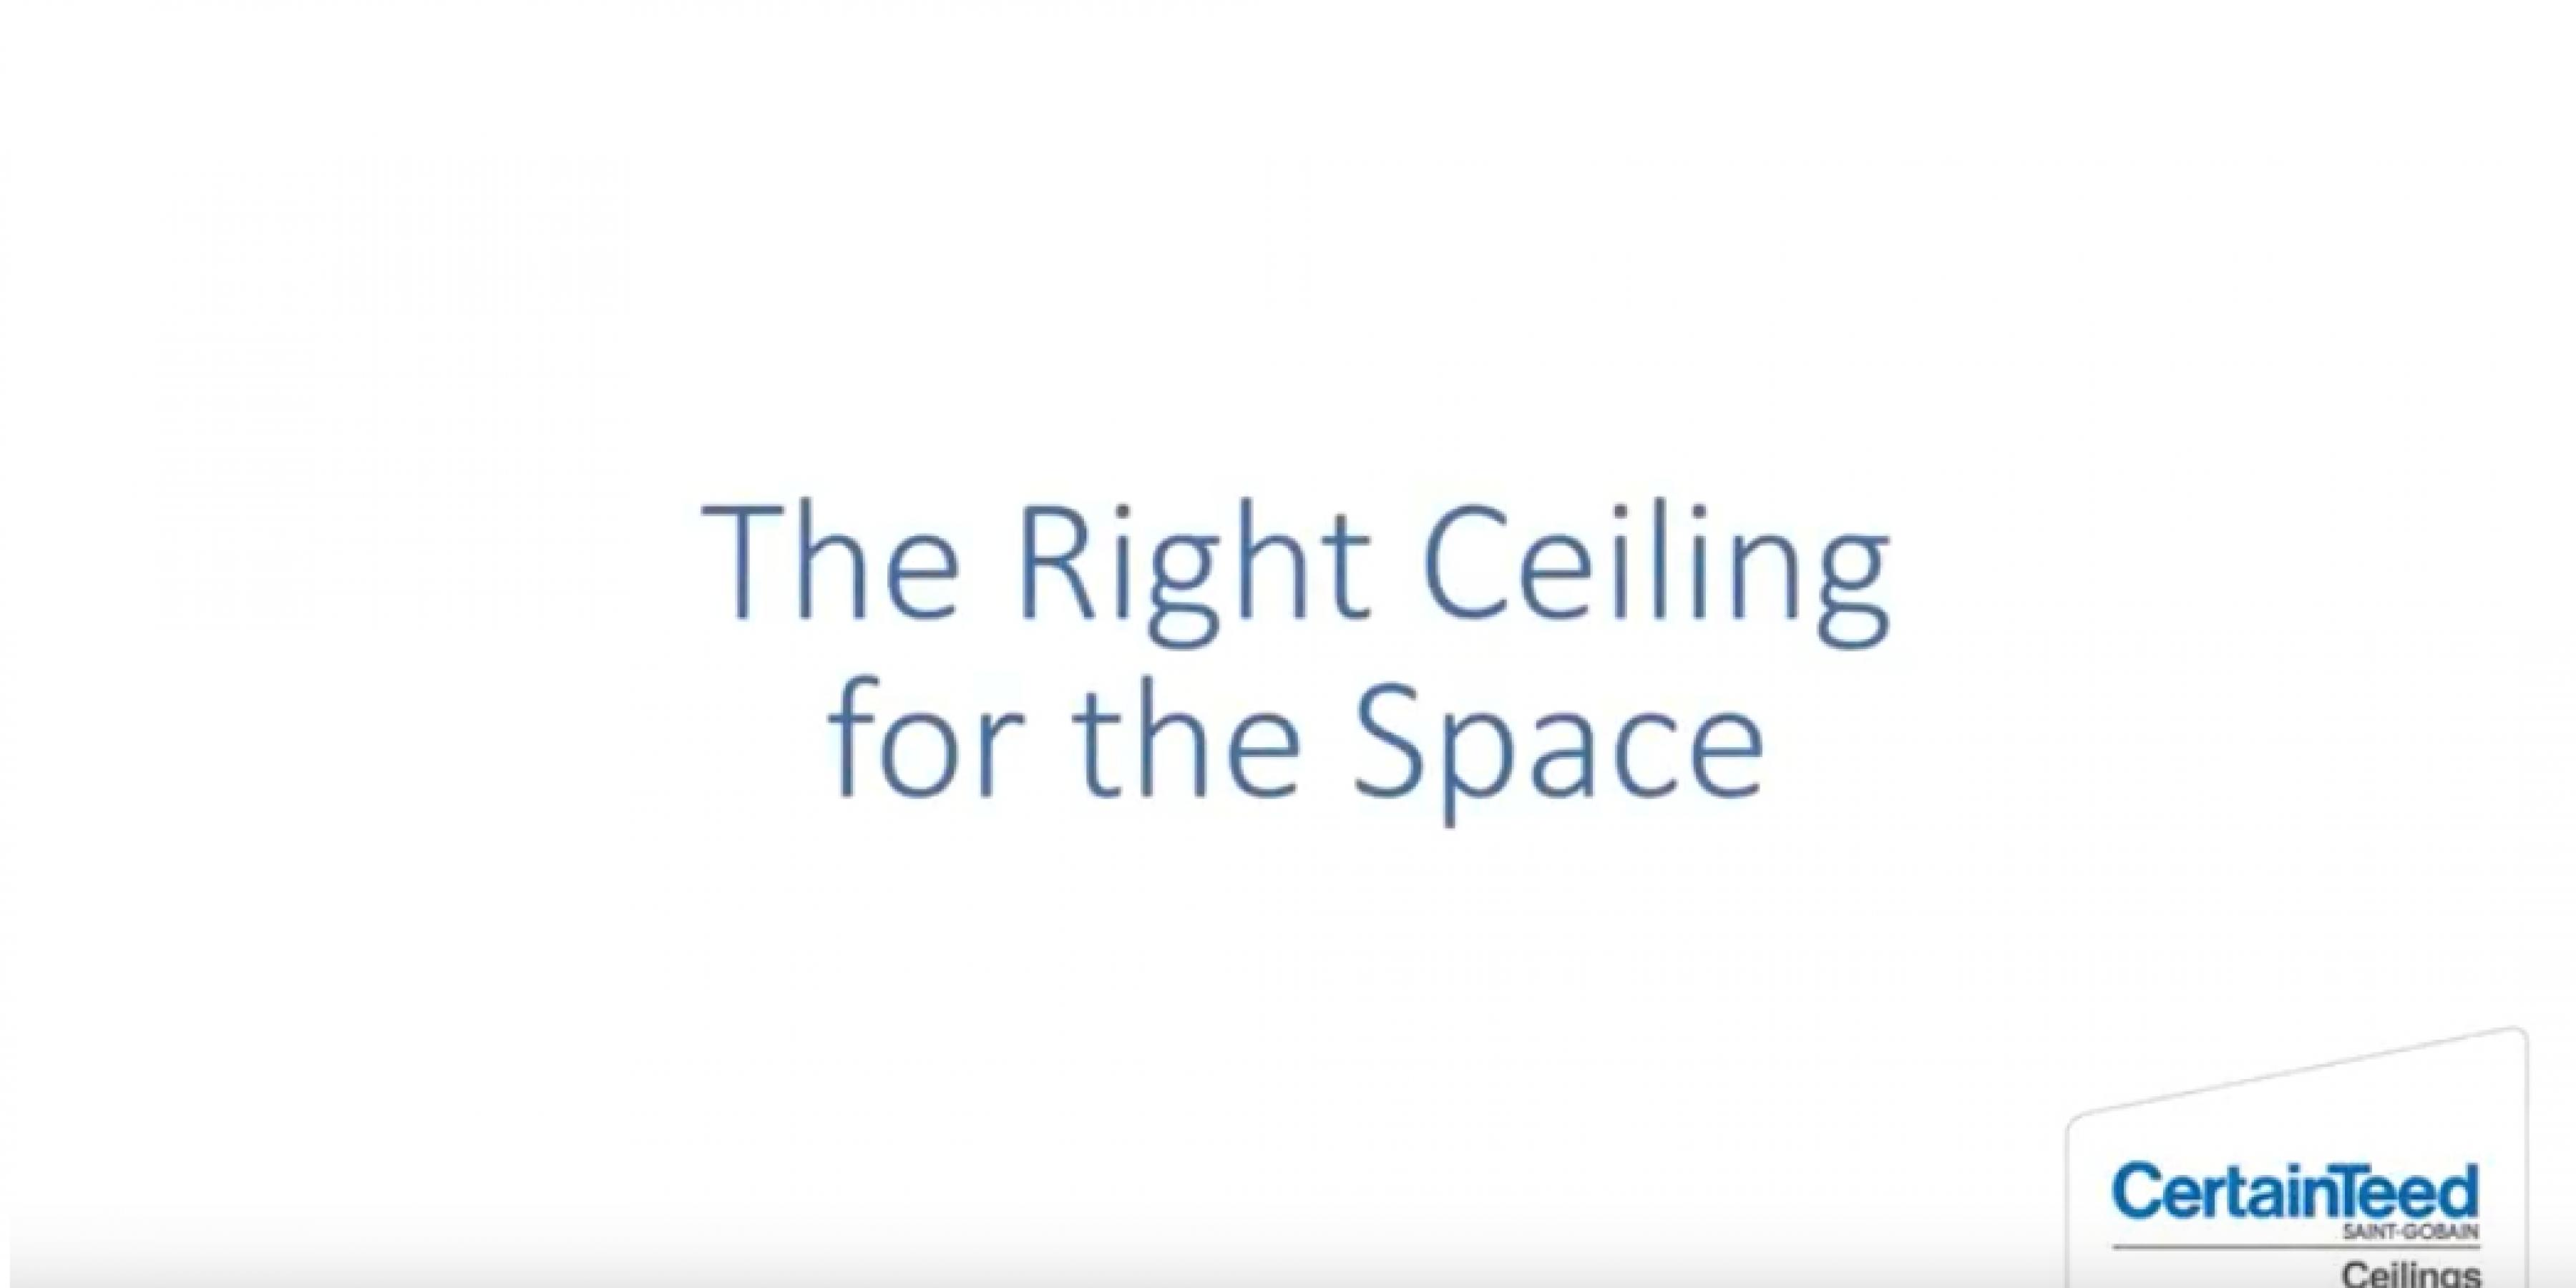 The Right Ceiling for the Space